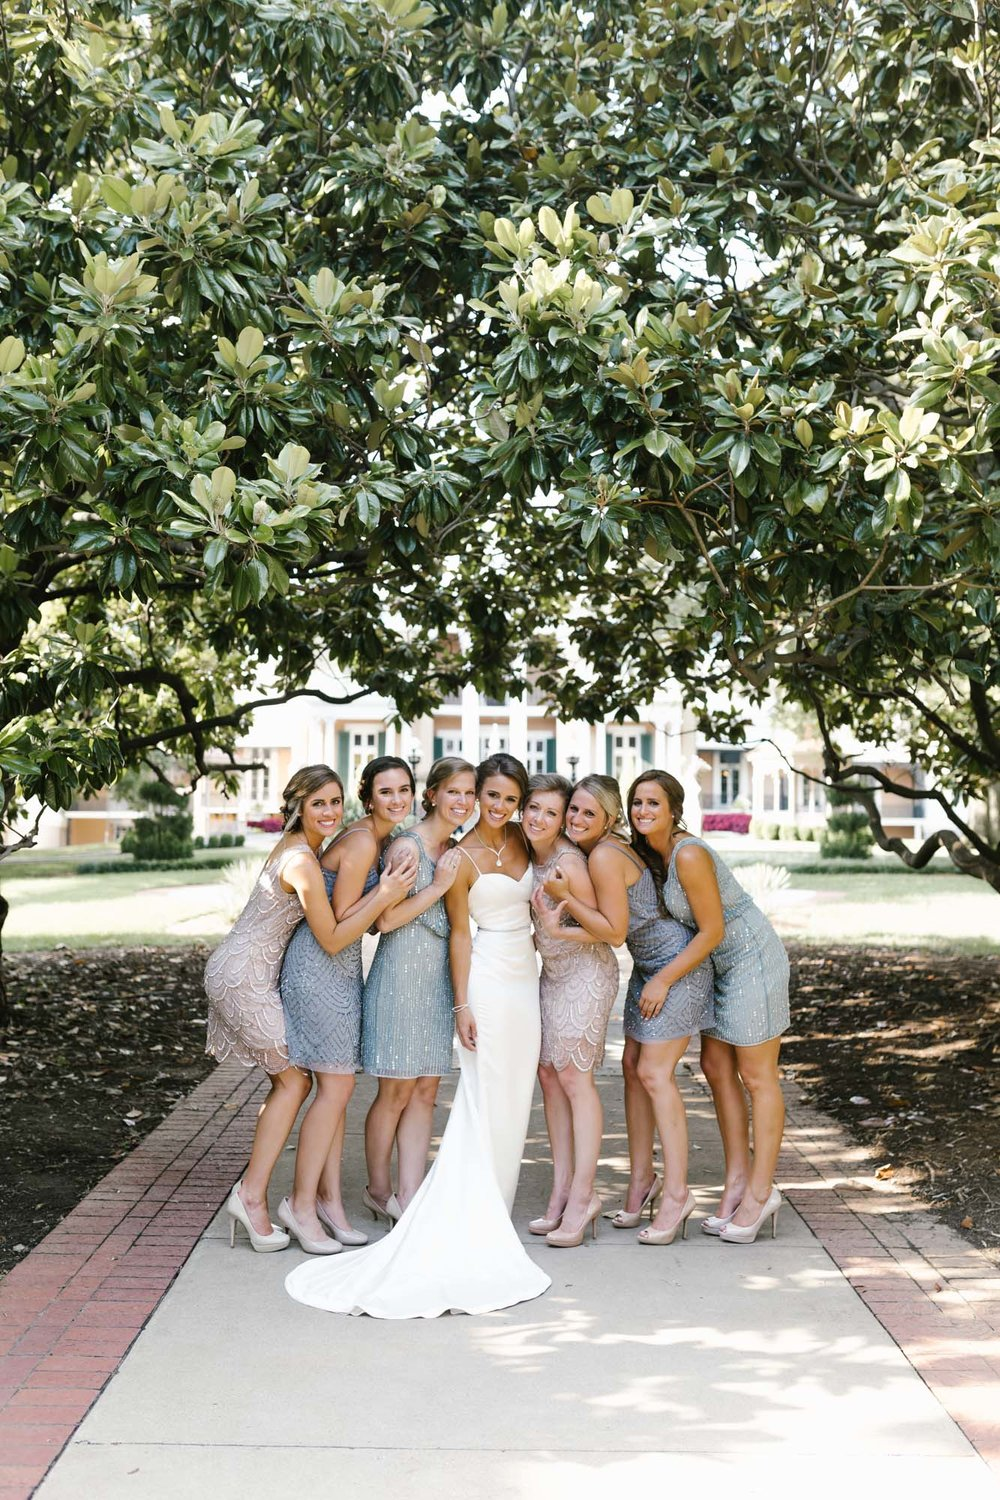 Nashville-weddings-AmyAllmandPhotography-6.jpg